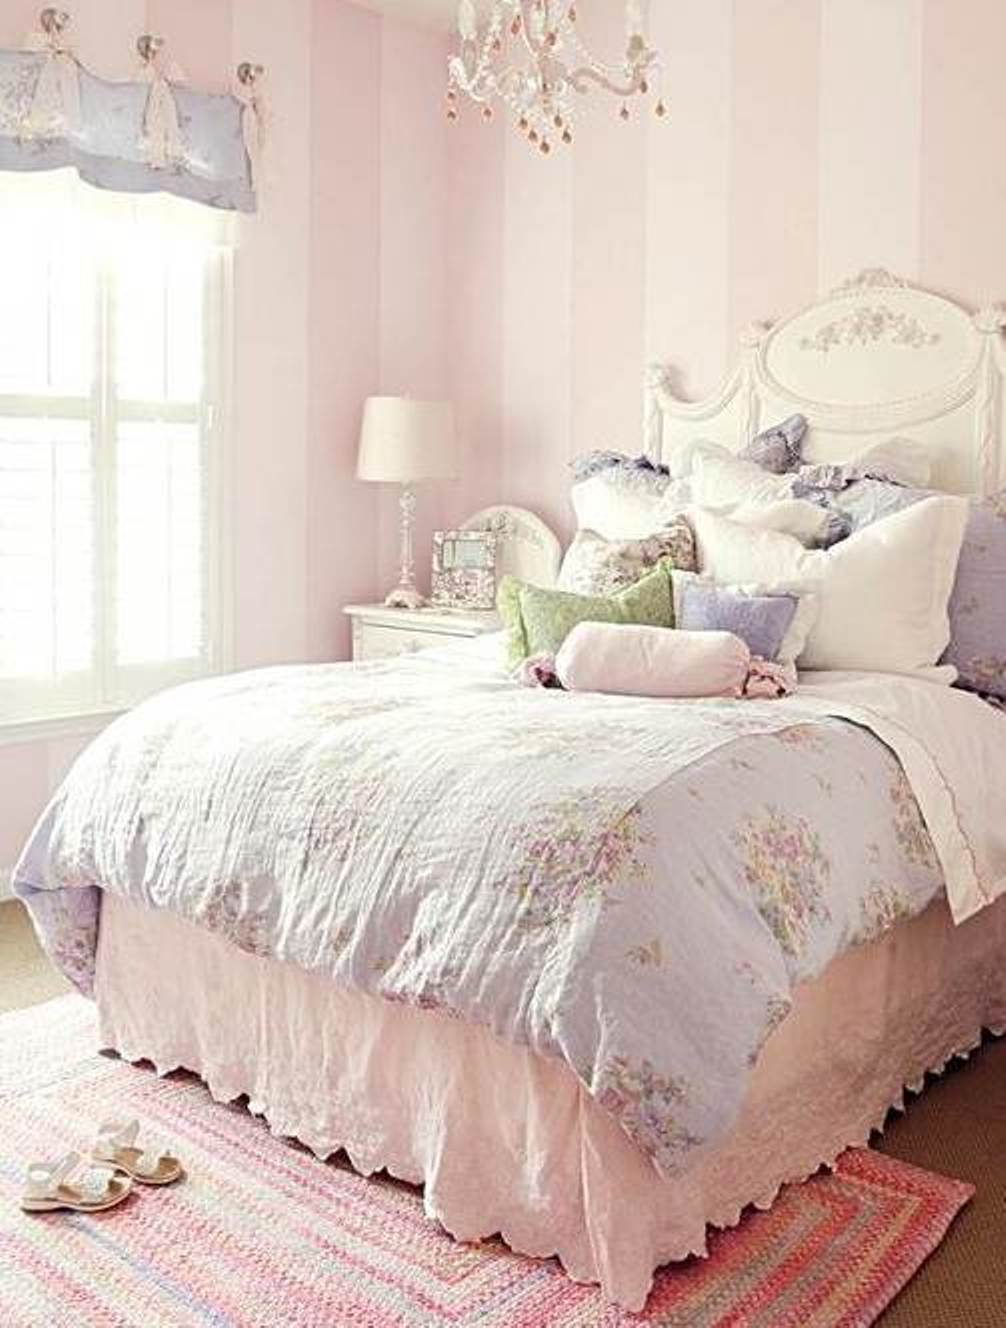 10 Most Recommended Cute Little Girl Bedroom Ideas 2021